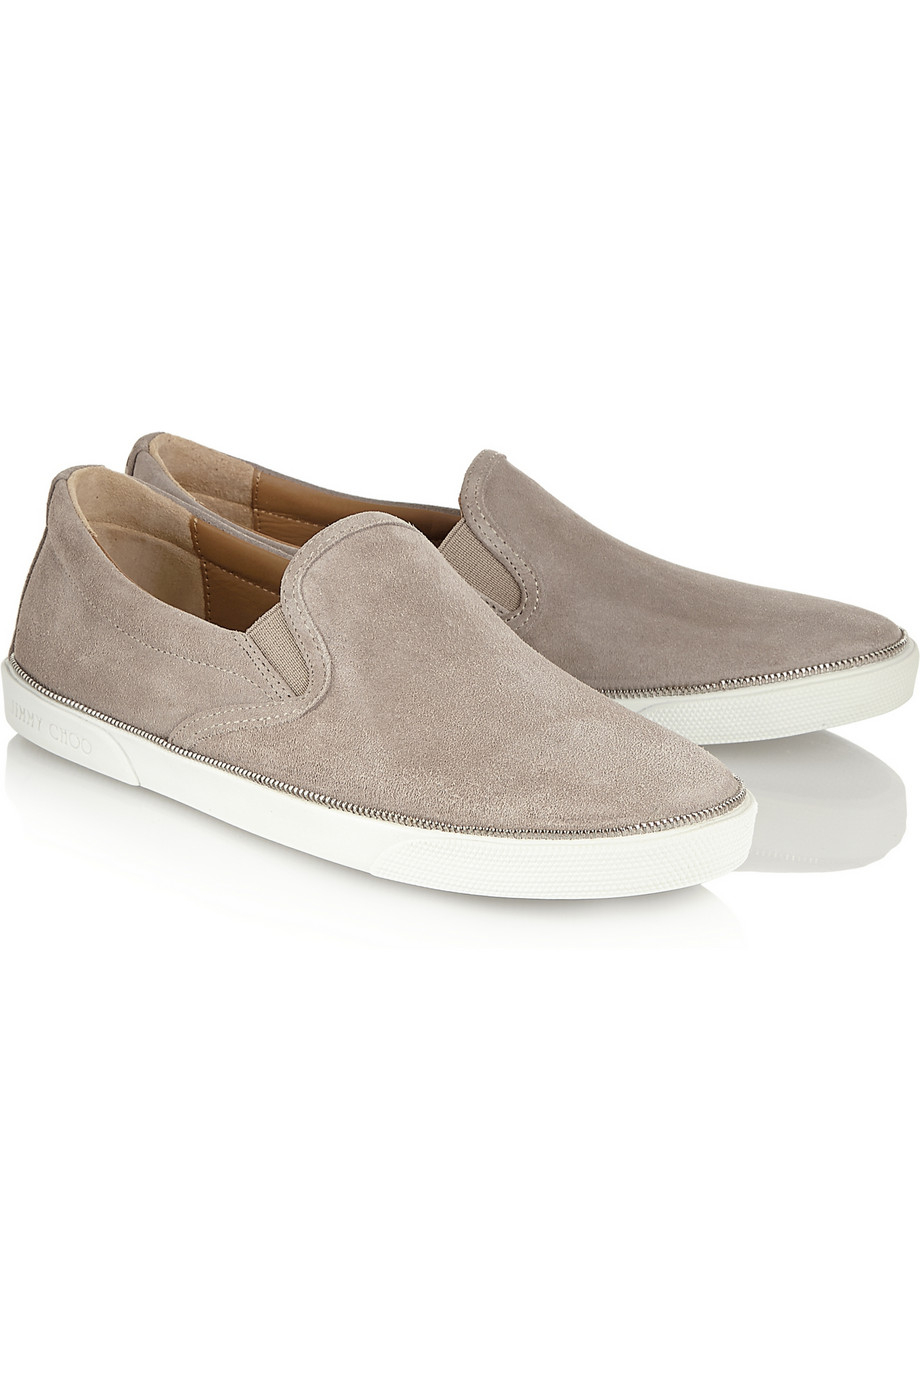 slip on suede trainers off 56% - www